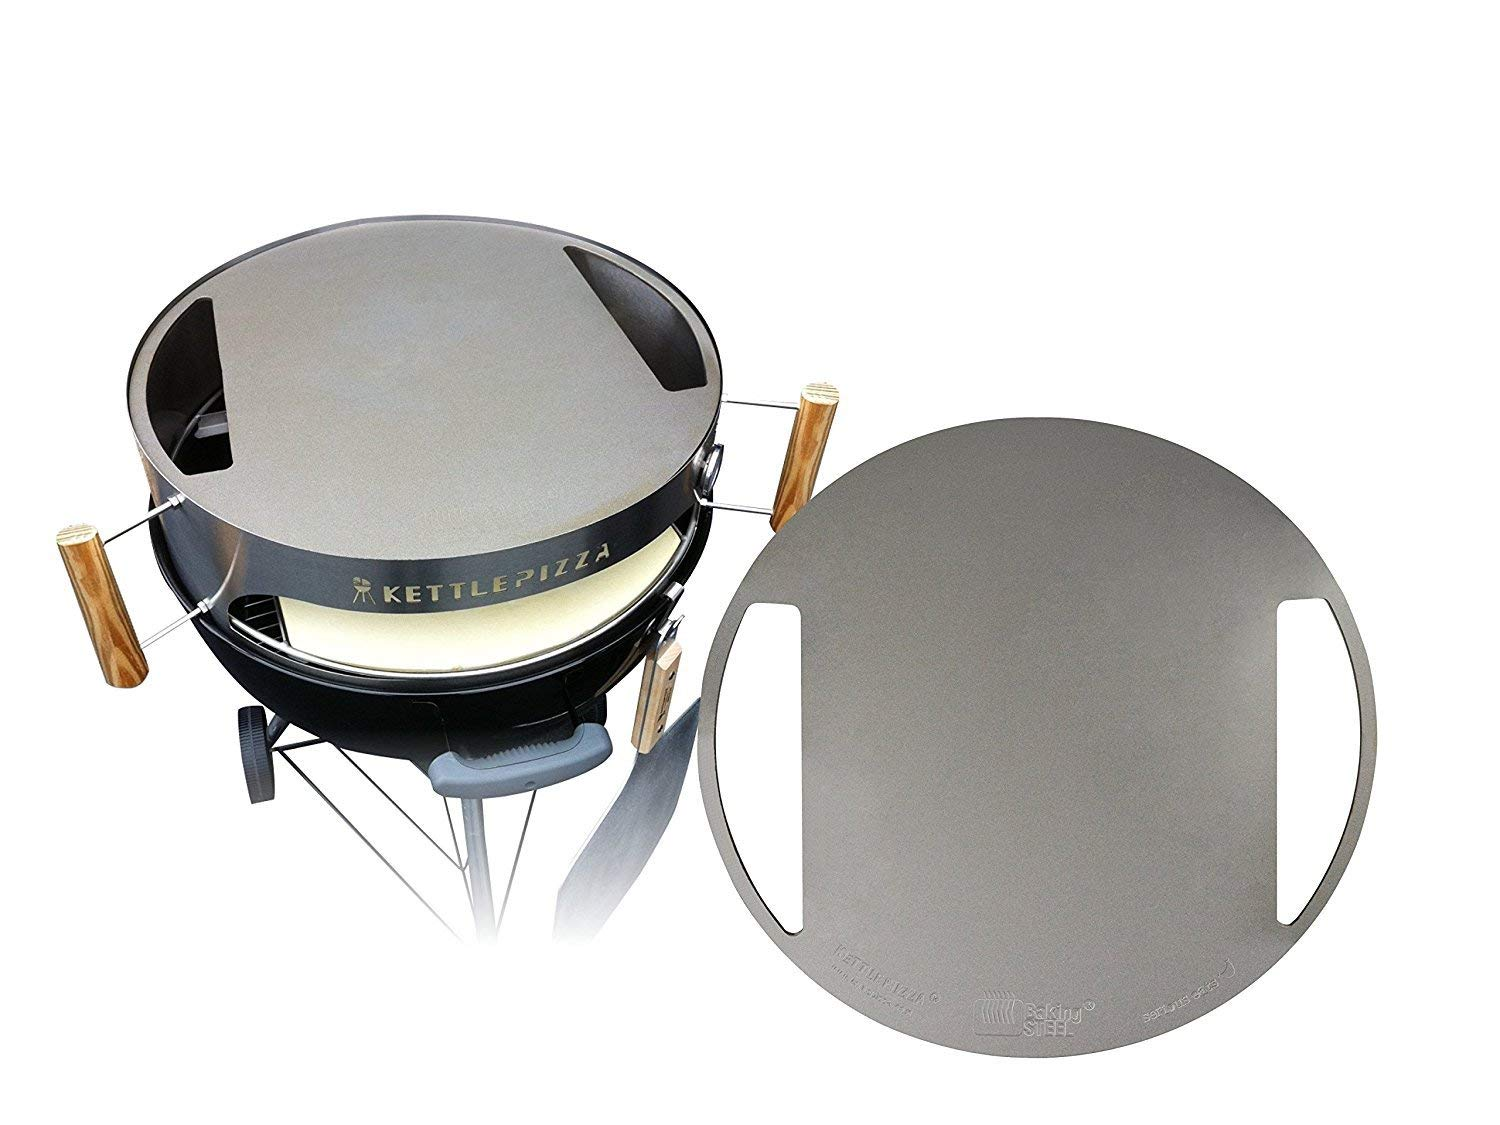 Made in USA KettlePizza Stainless Baking Steel - Steel Skillet/Lid for 22.5'' Kettle Grills